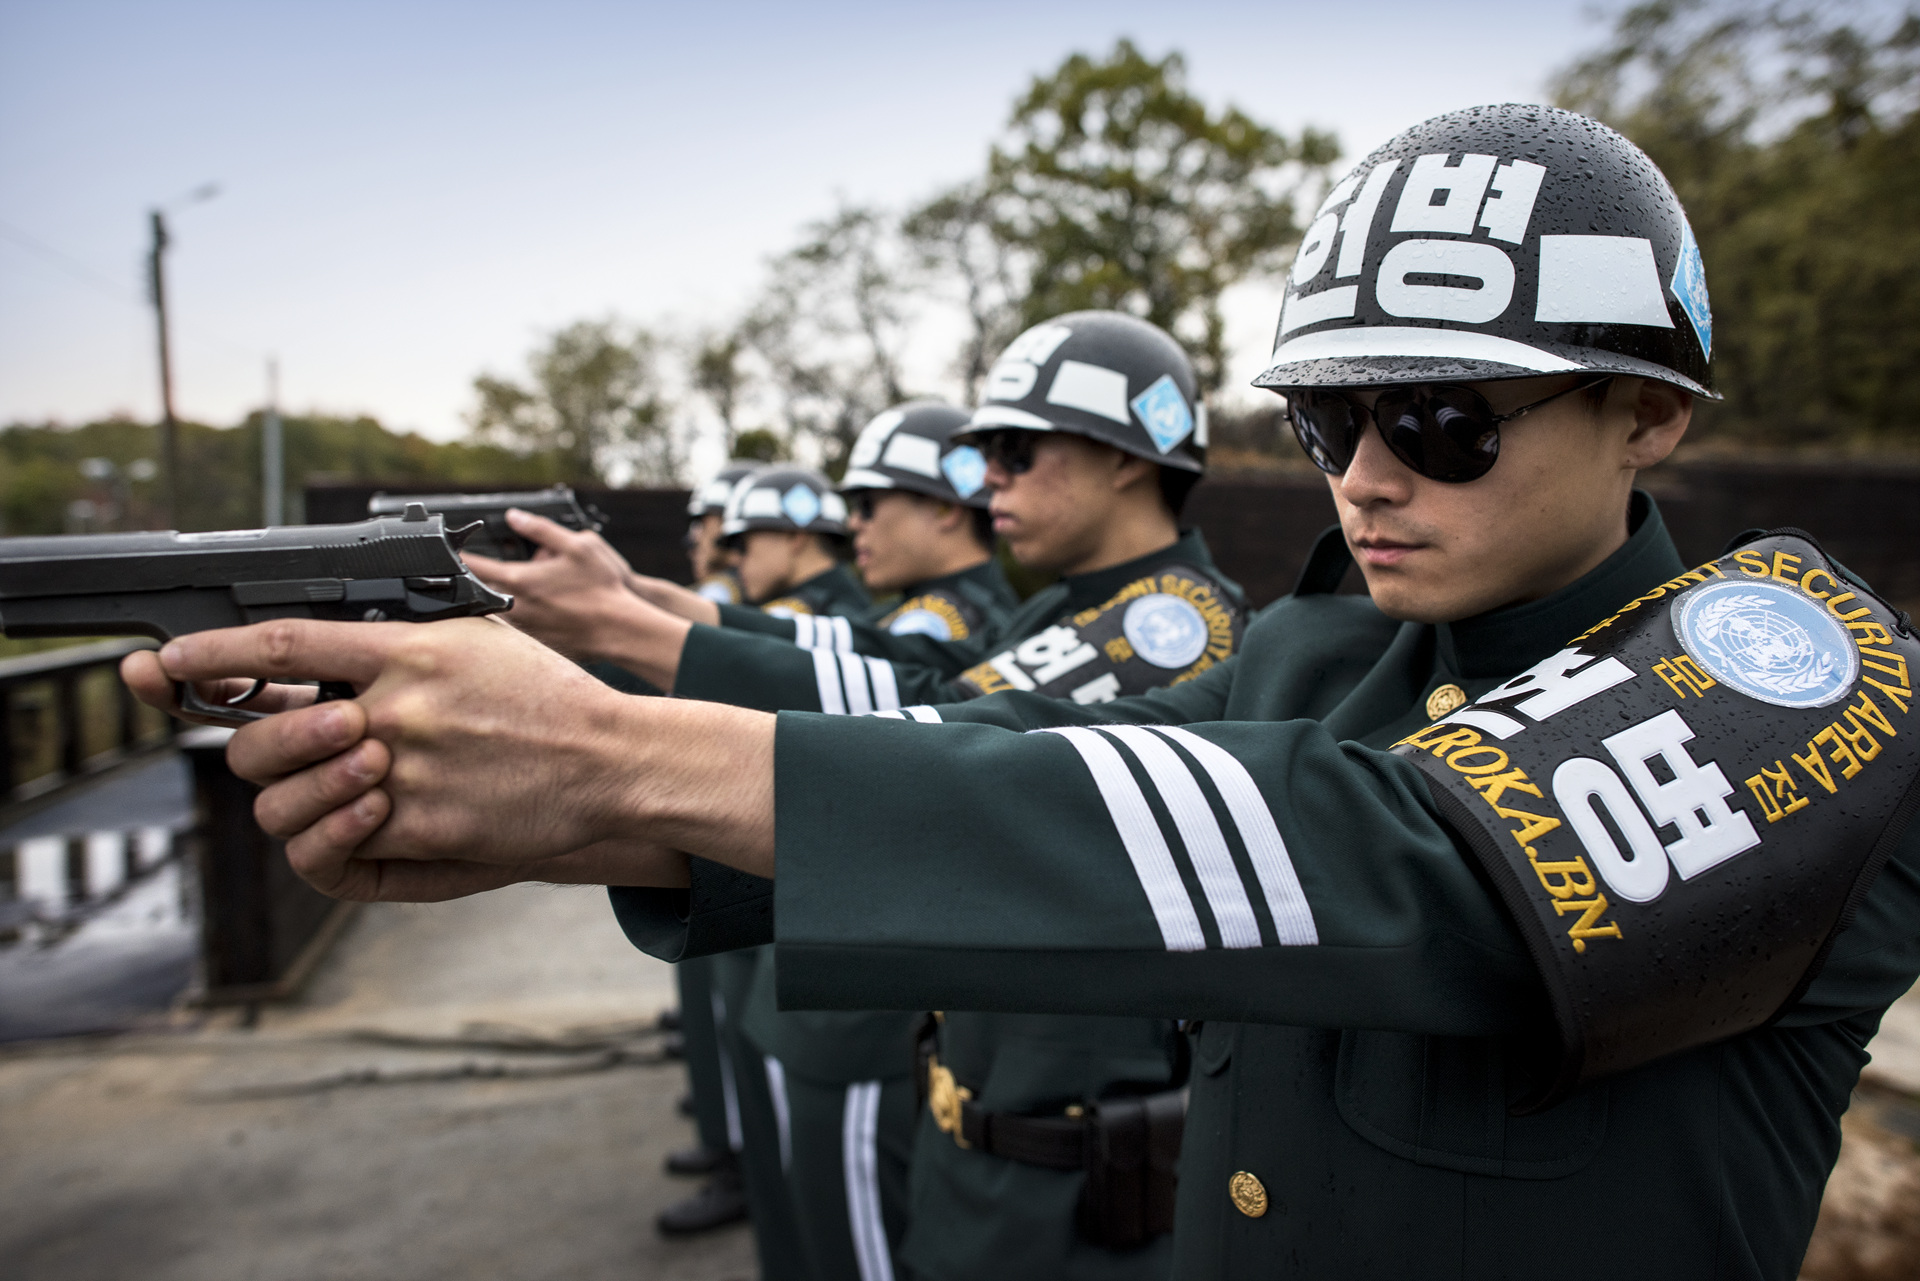 South Korean JSA (Joint Security Area) cordon soldiers practice pistol shooting at the firing range.